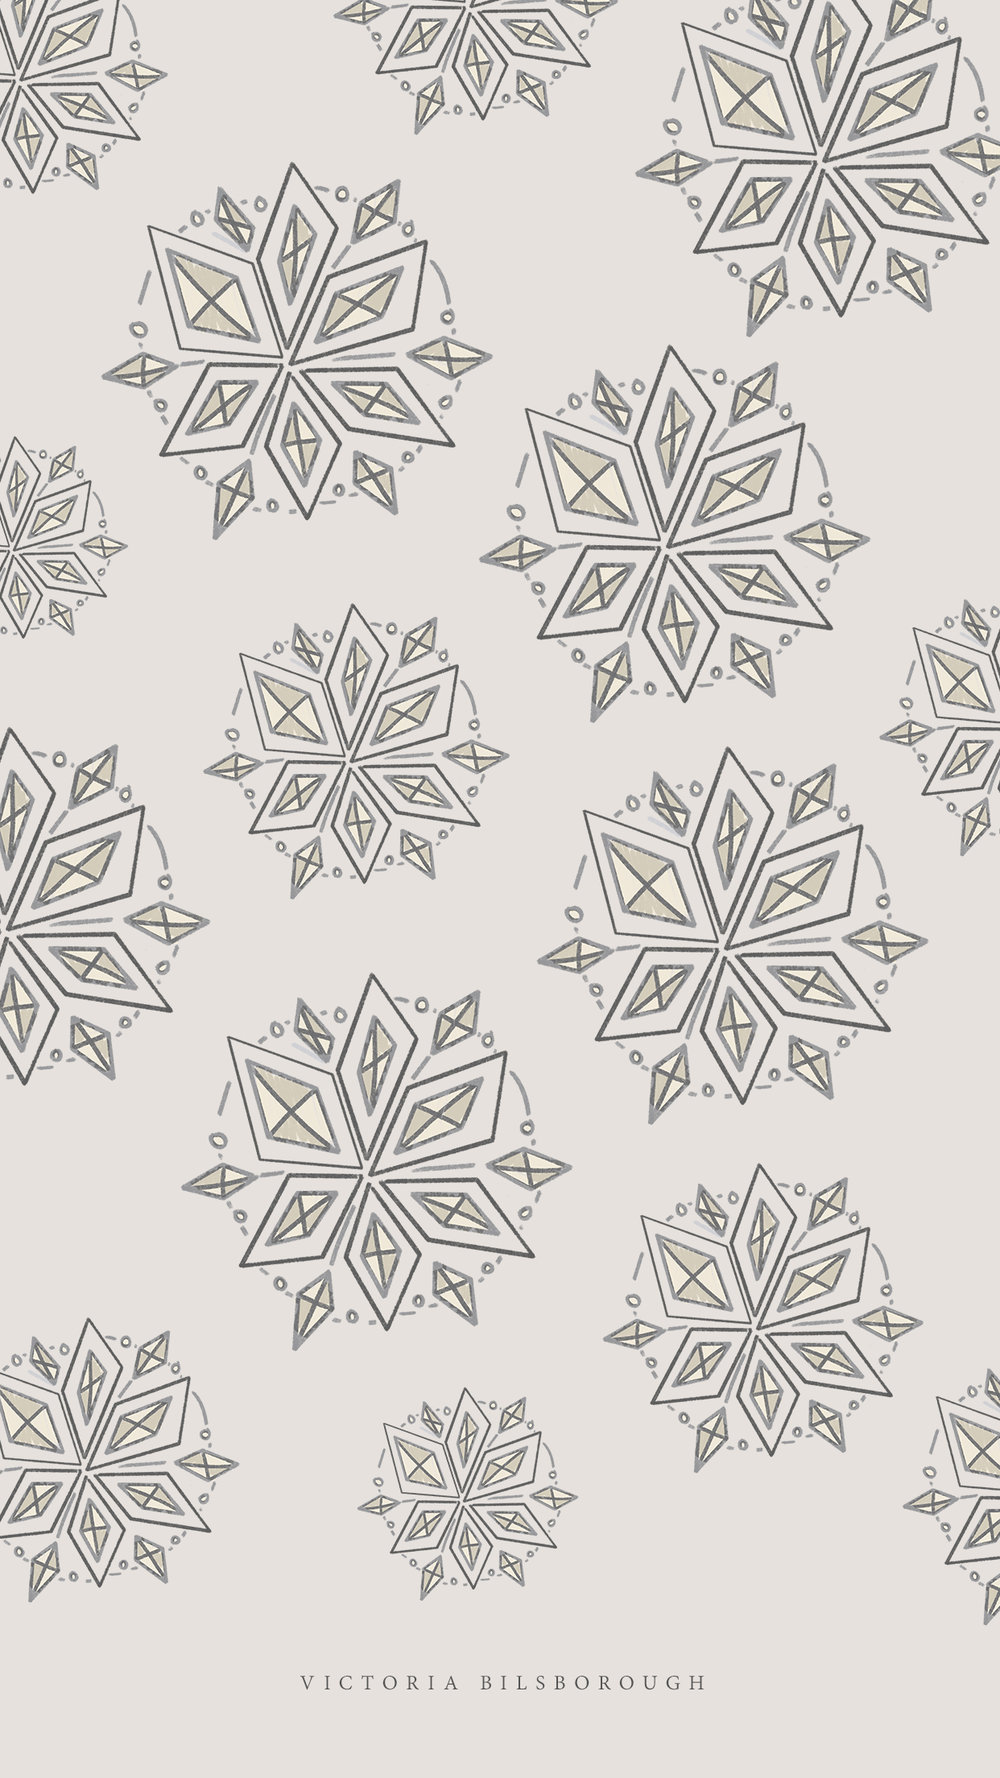 Free Christmas Wallpapers 2018 | victoriabilsborough.com